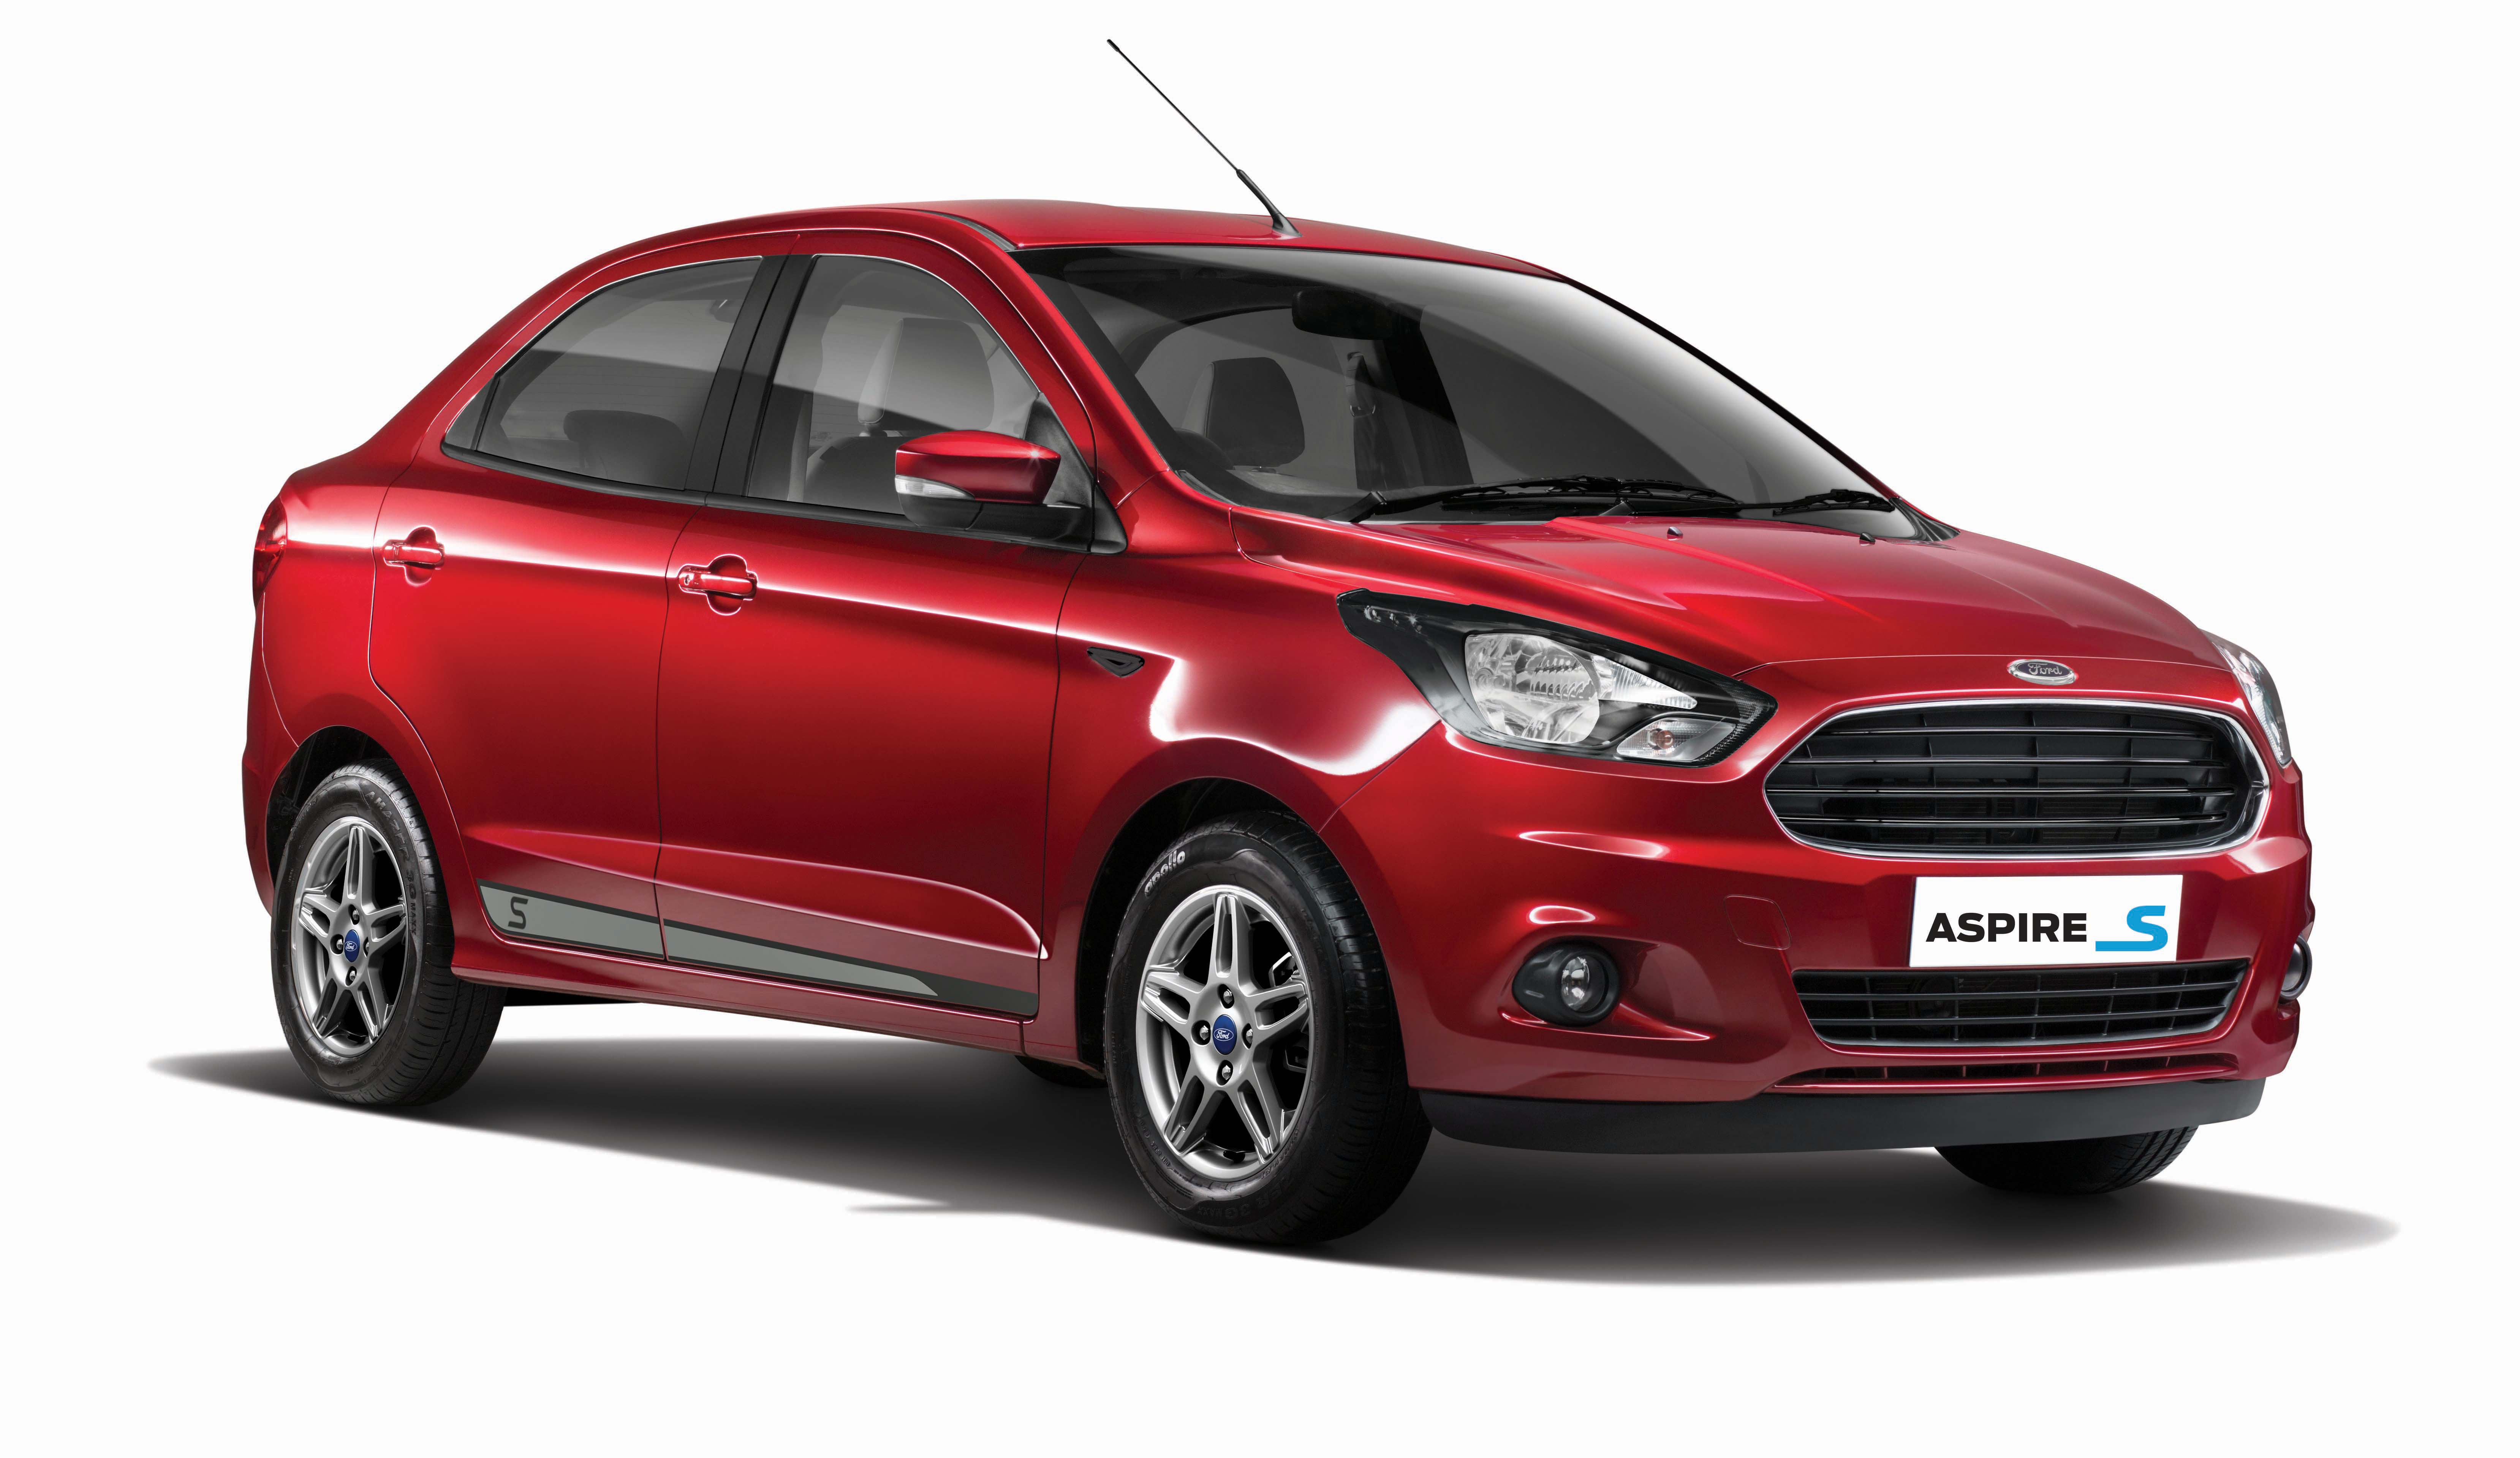 Ford figo aspire s launched at inr 6 51 lakh in india